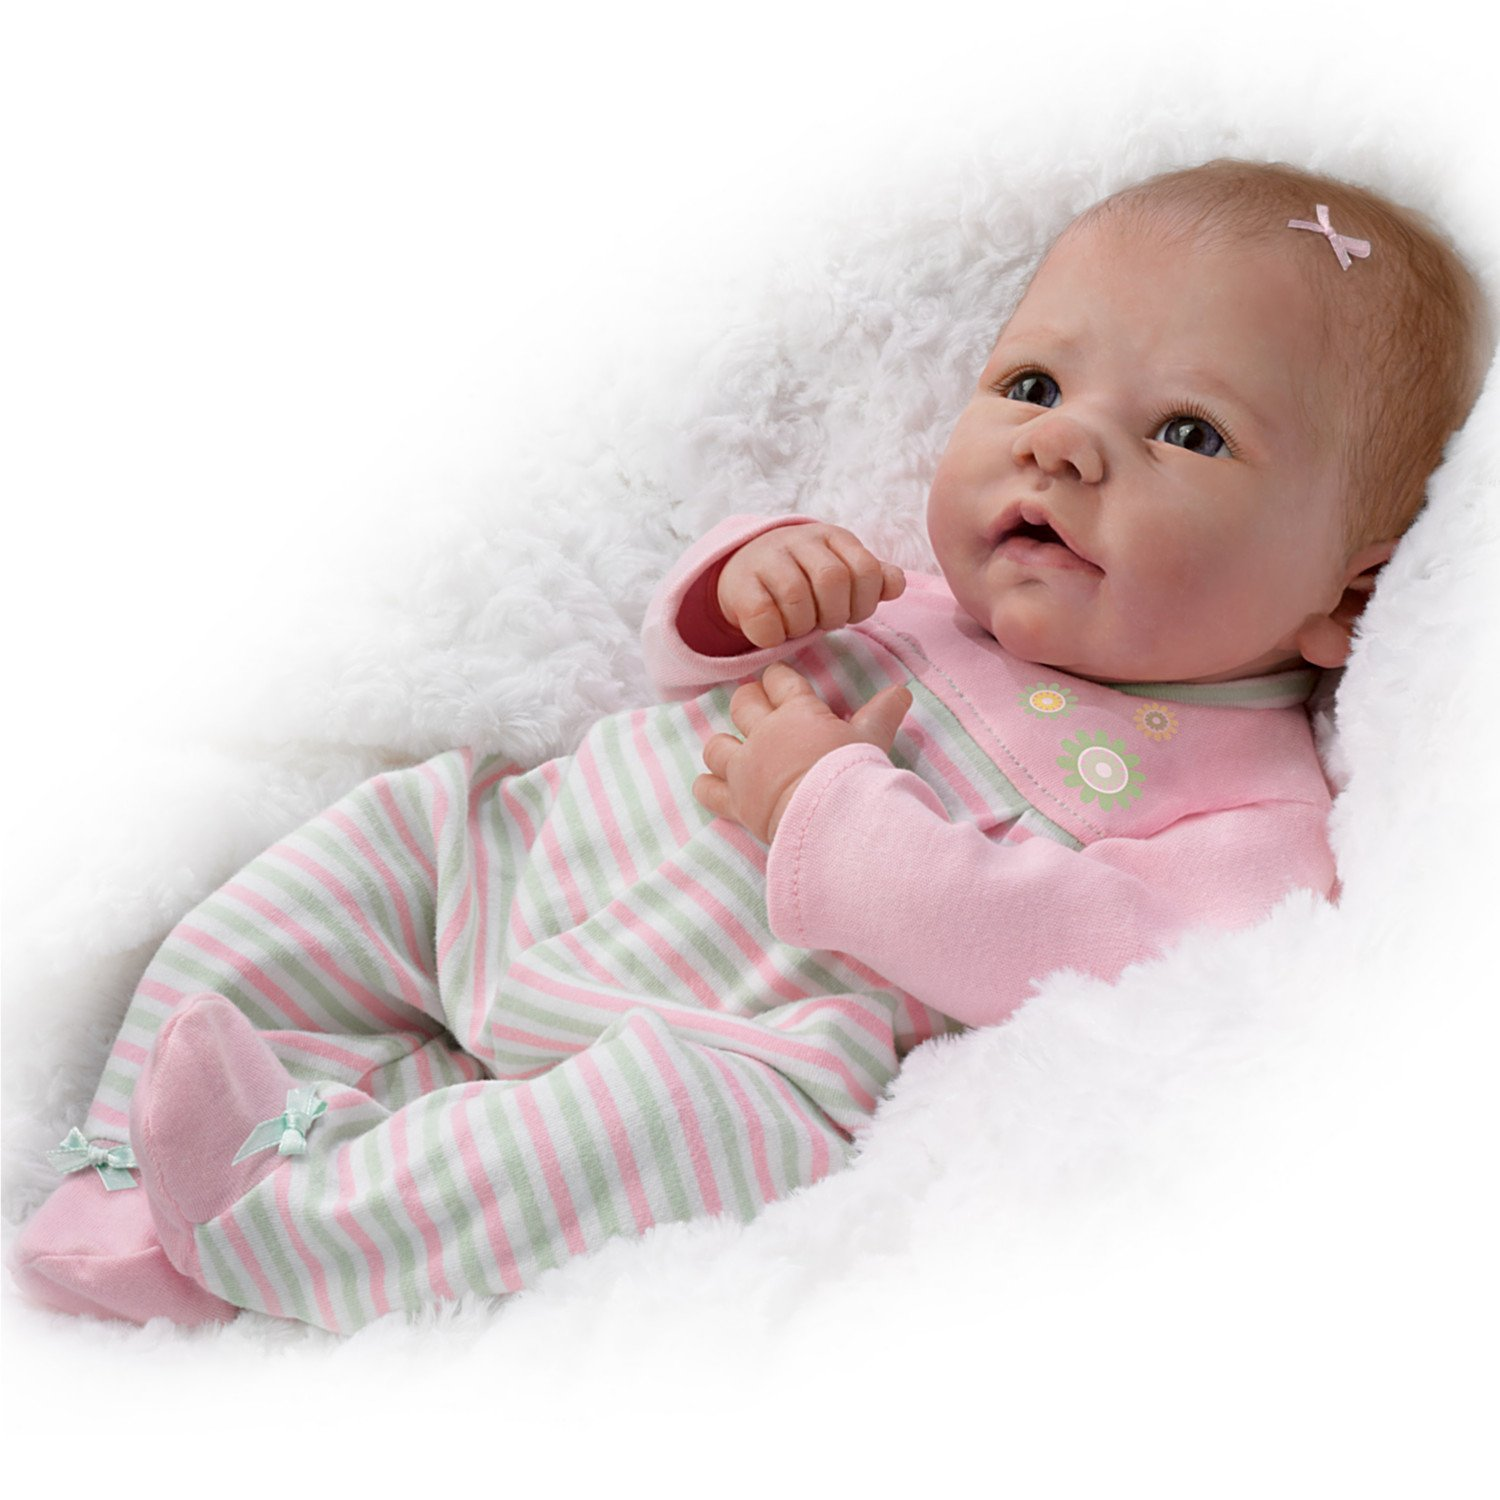 Elizabeth So Truly Real® Lifelike & Realistic Weighted Newborn Baby Doll 18-inches by The Ashton-Drake Galleries by The Ashton-Drake Galleries